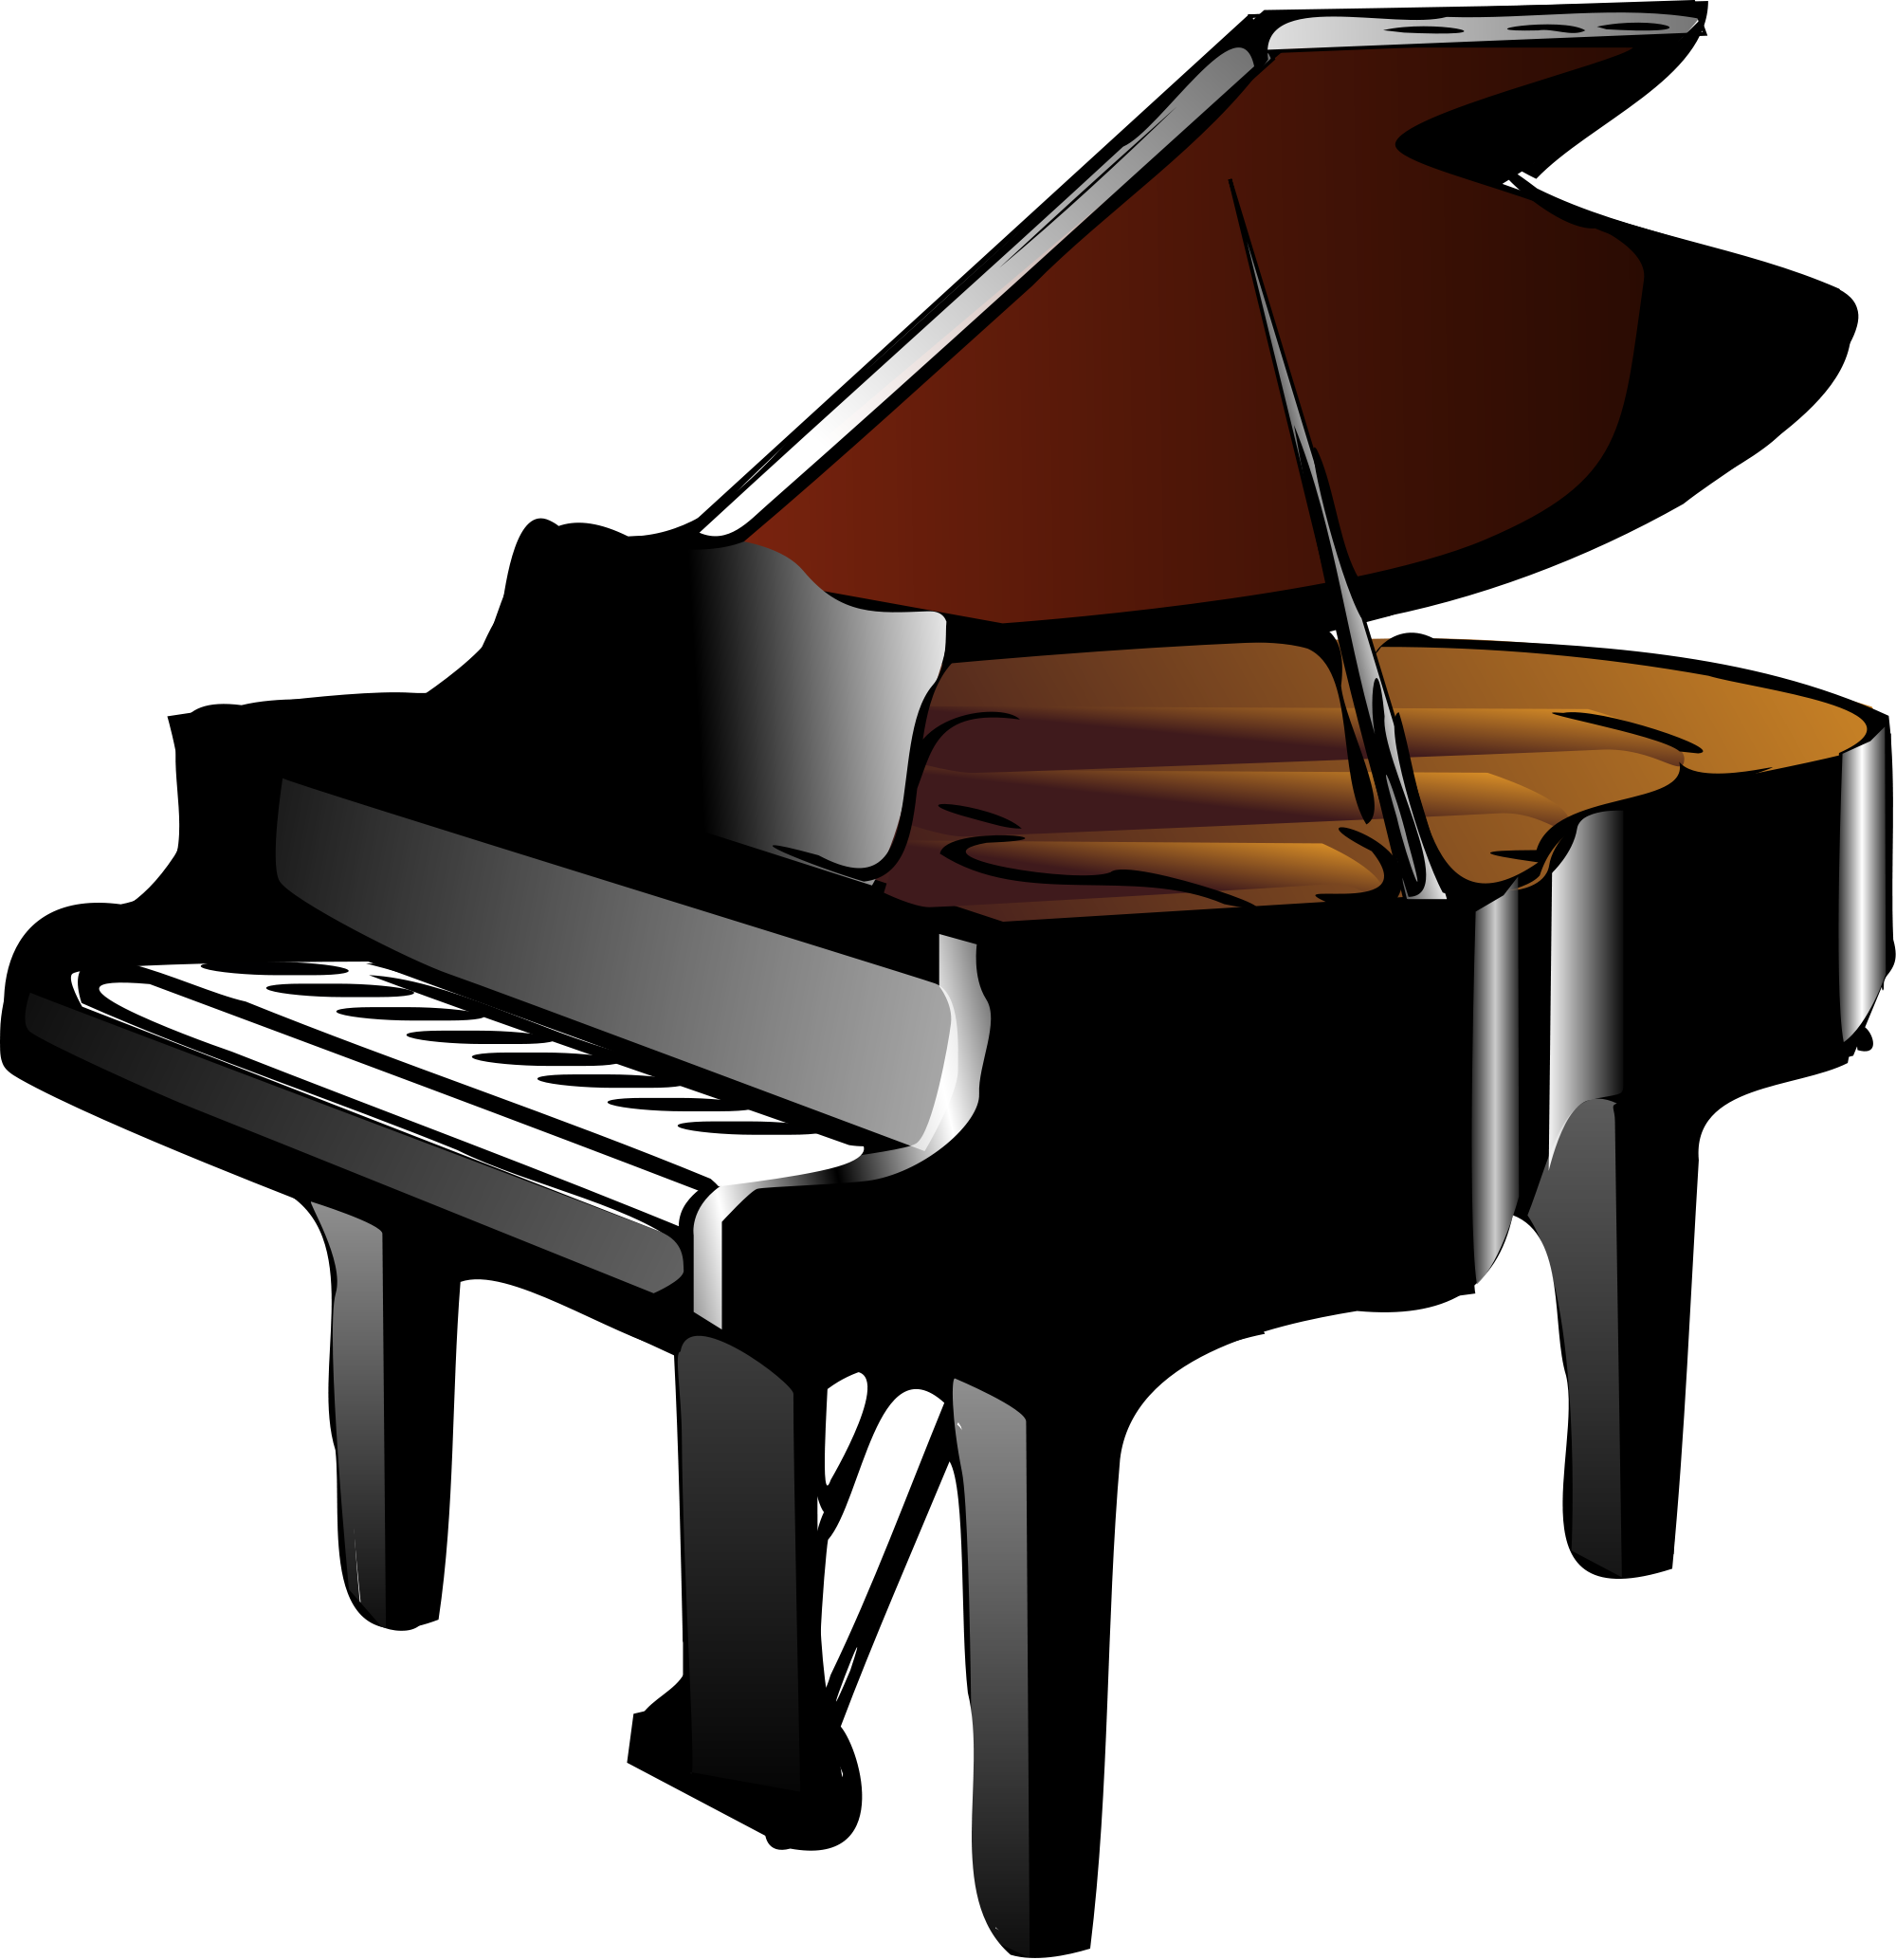 File wikimedia commons open. Piano clipart svg